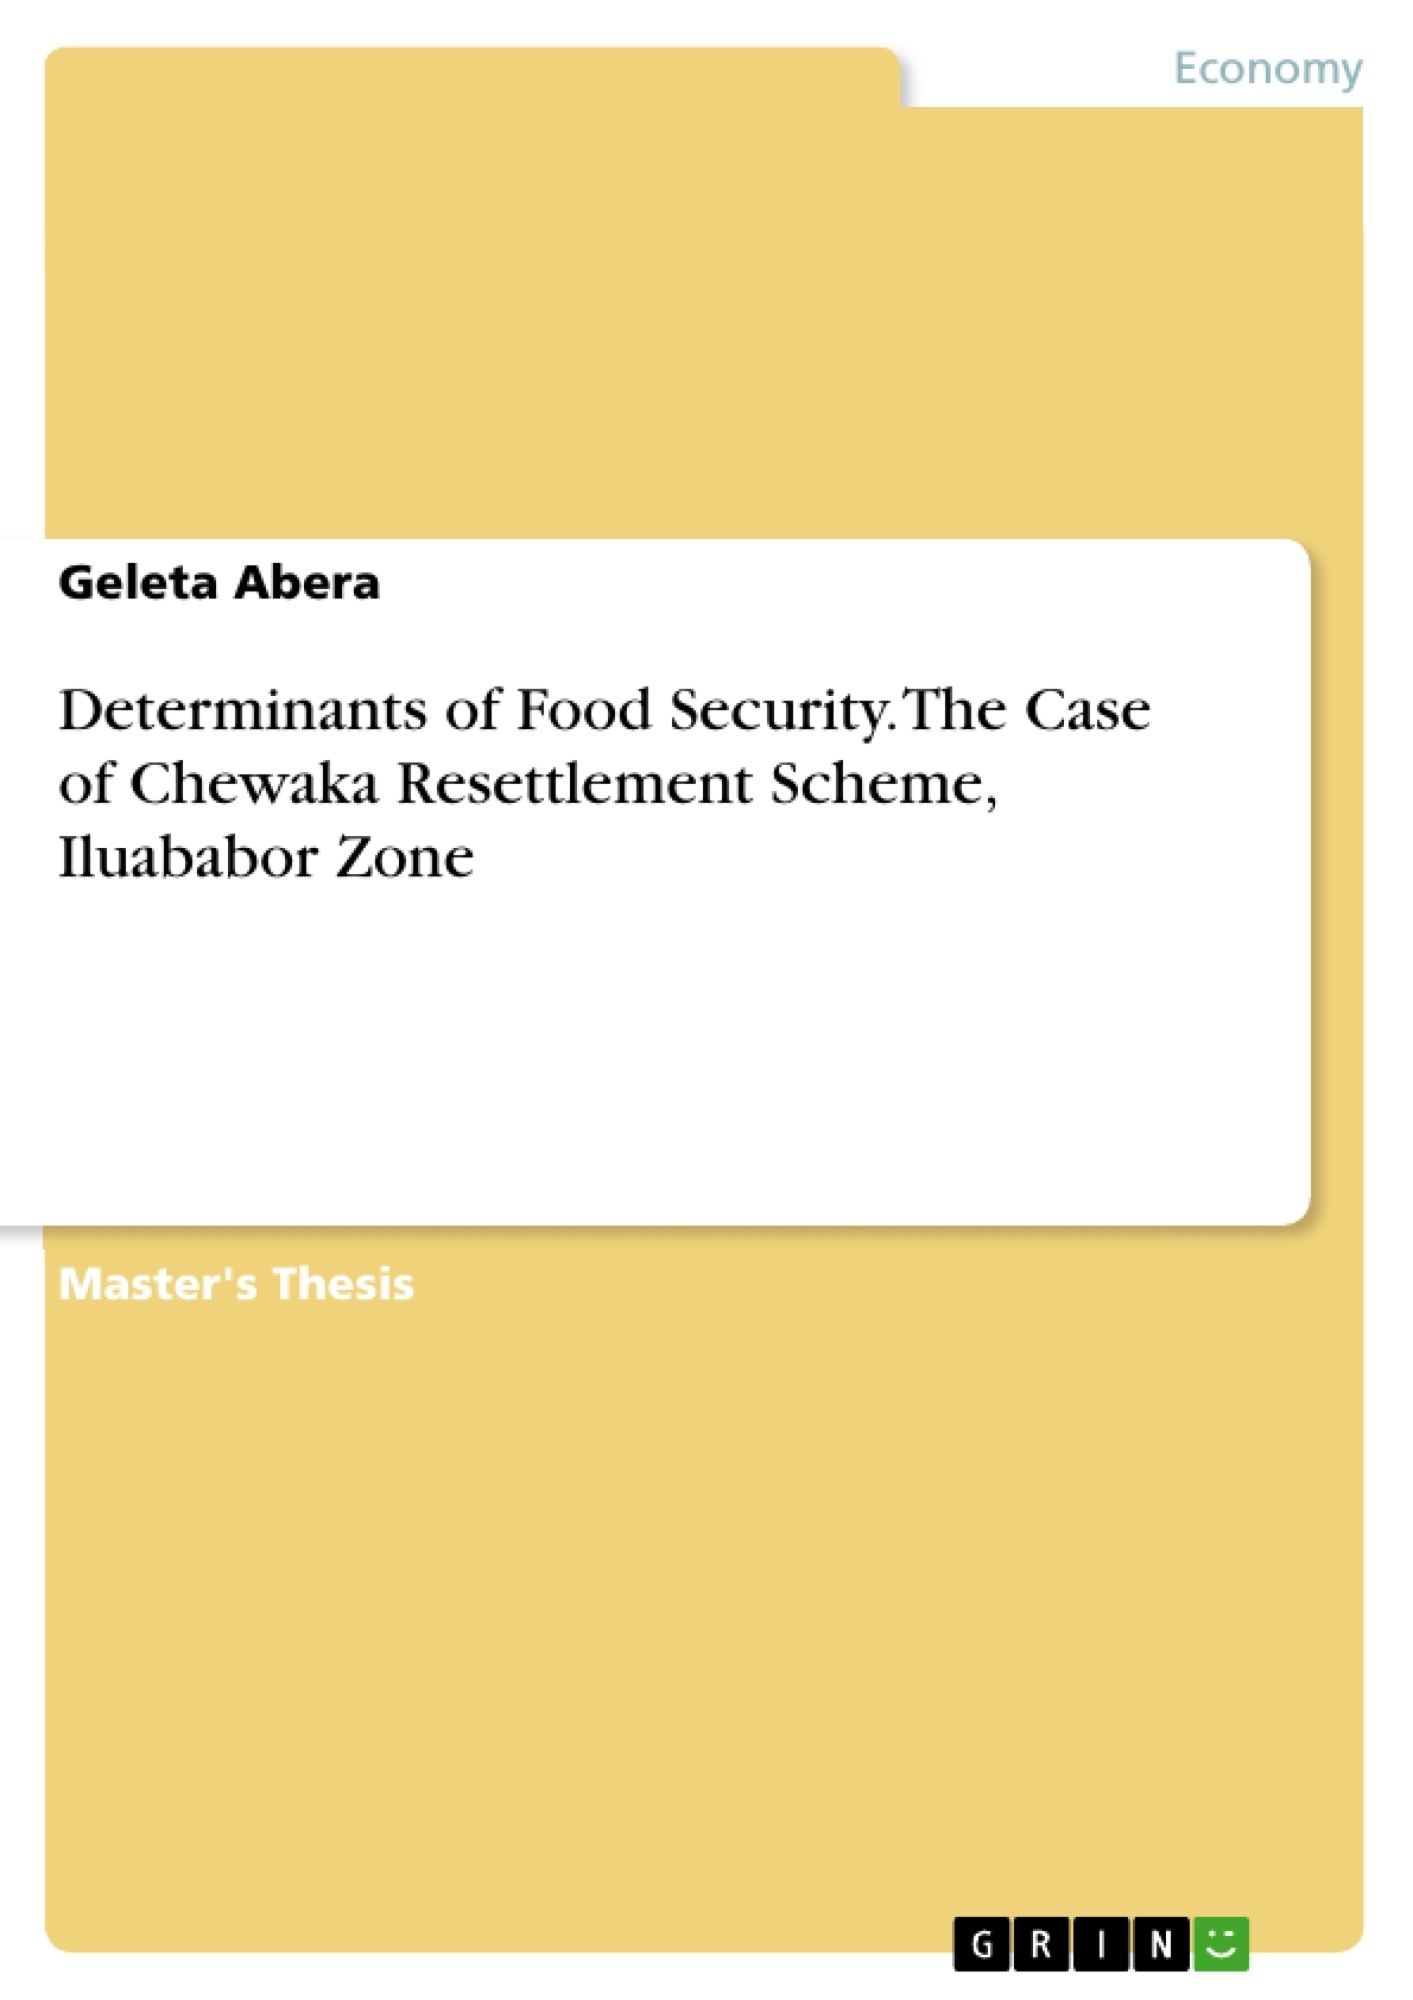 Title: Determinants of Food Security. The Case of Chewaka Resettlement Scheme, Iluababor Zone